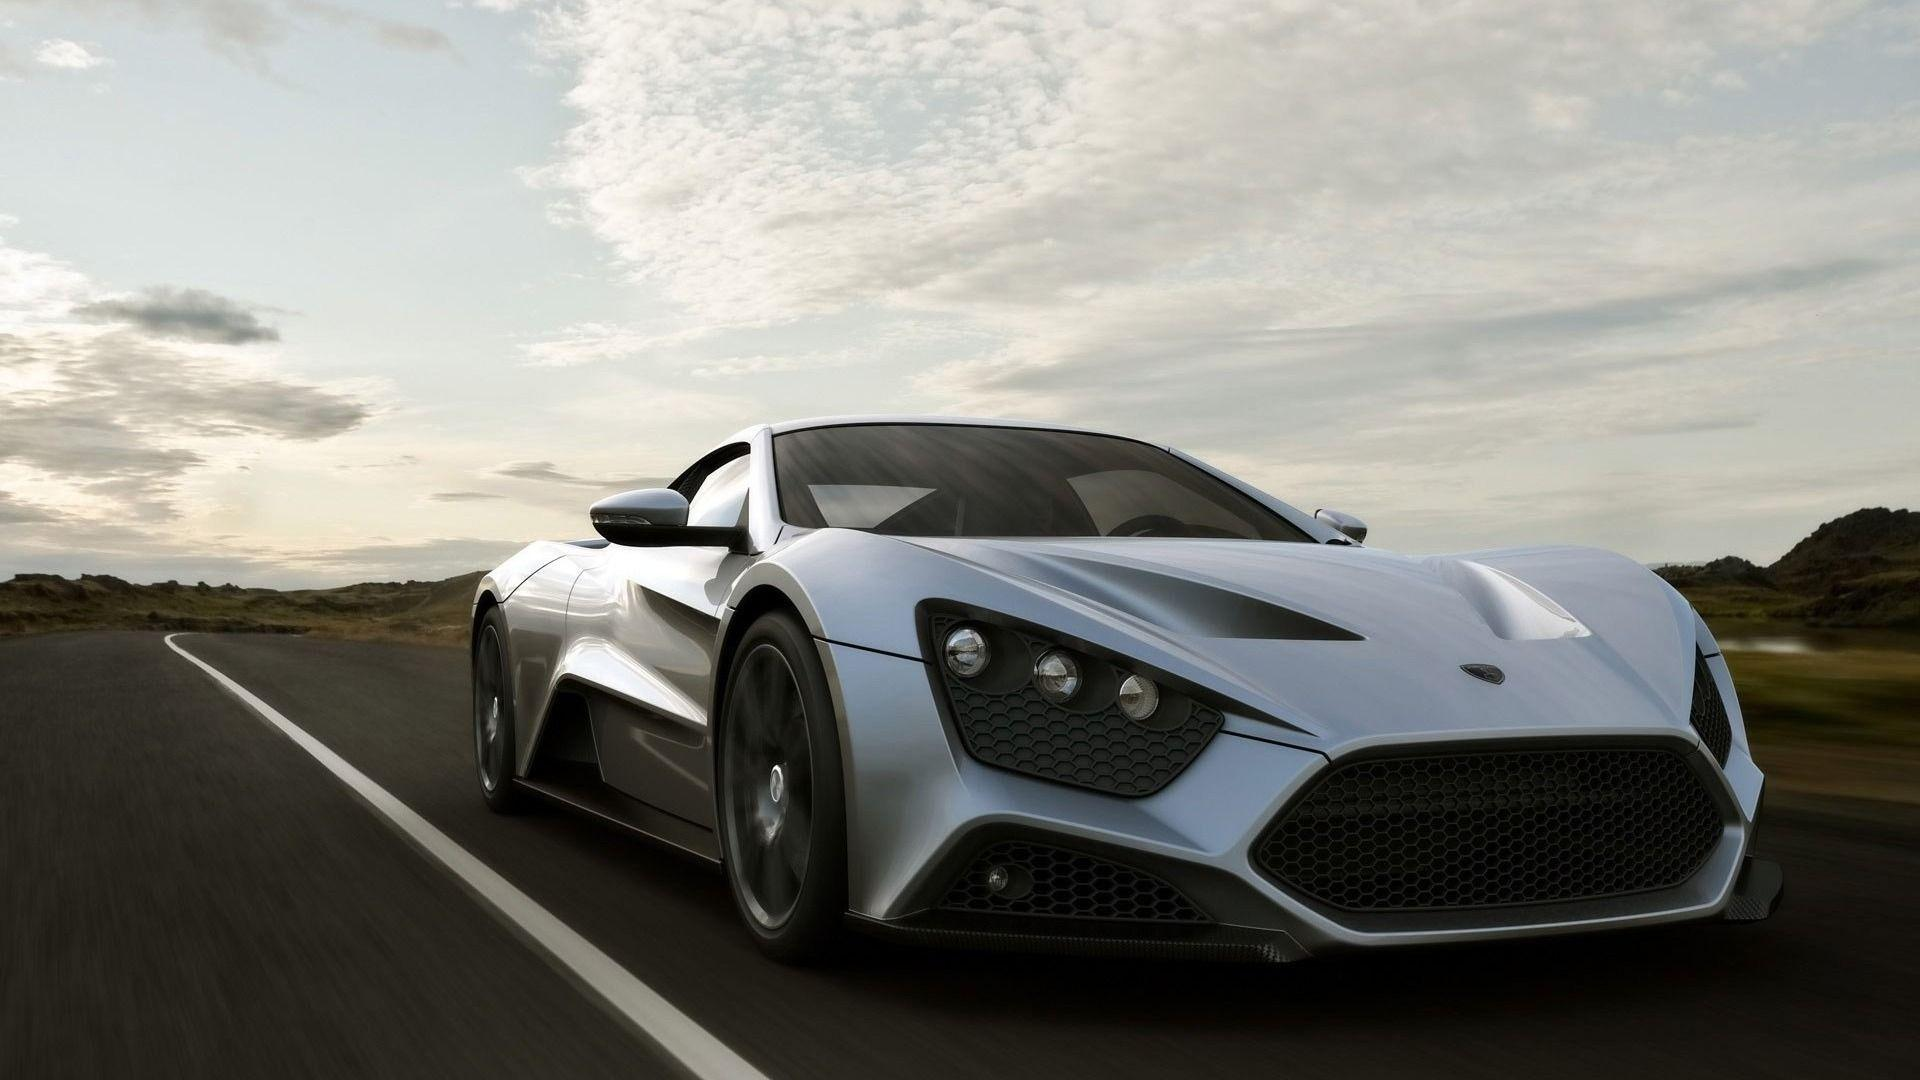 Supercars hd wallpapers wallpaper cave - Best wallpapers of cars and bikes ...